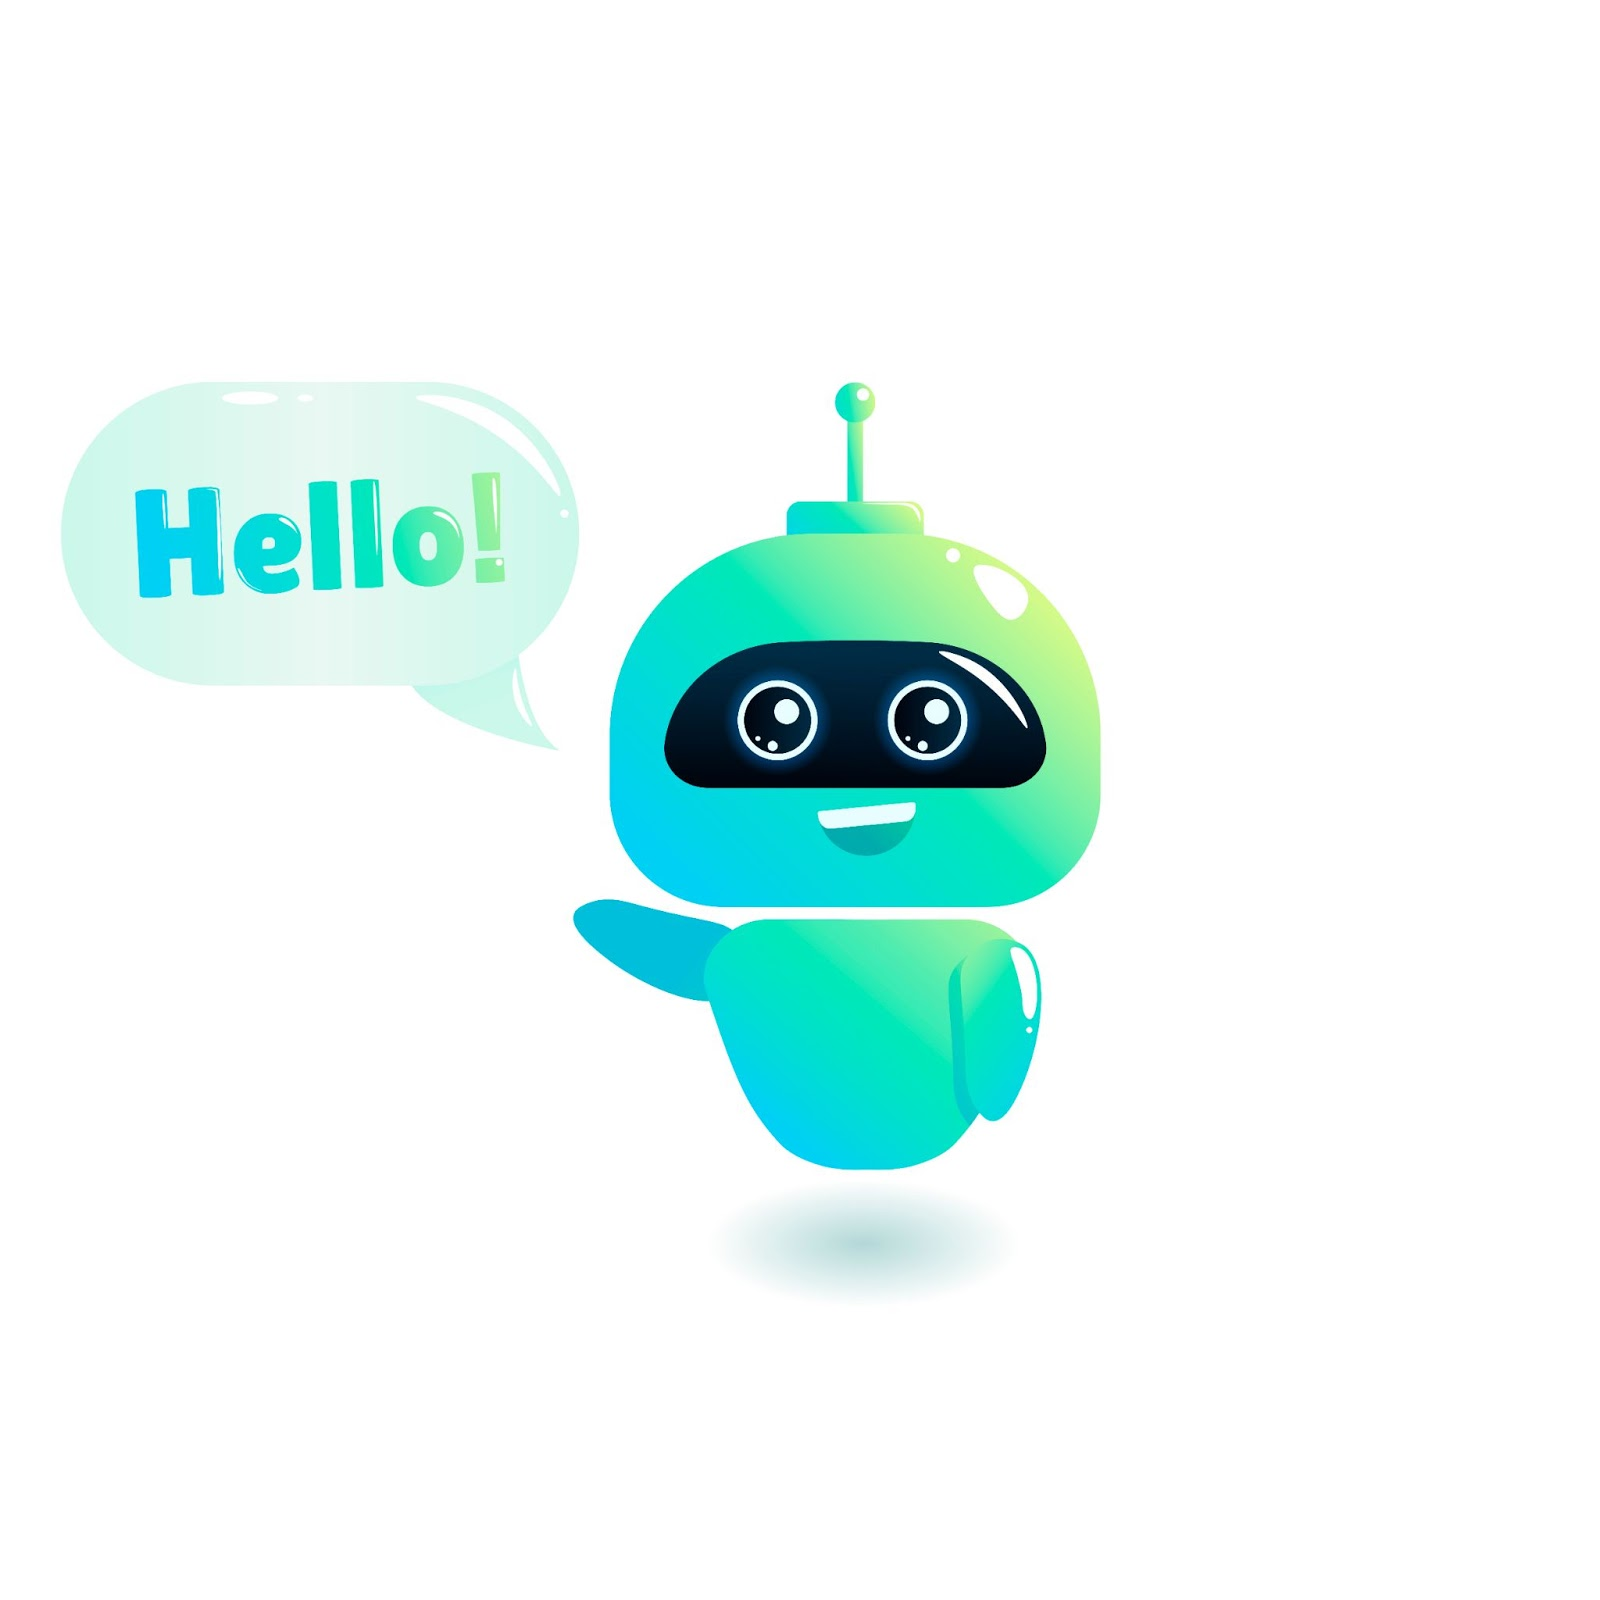 Chatbot saying Hello with a green and blue tint